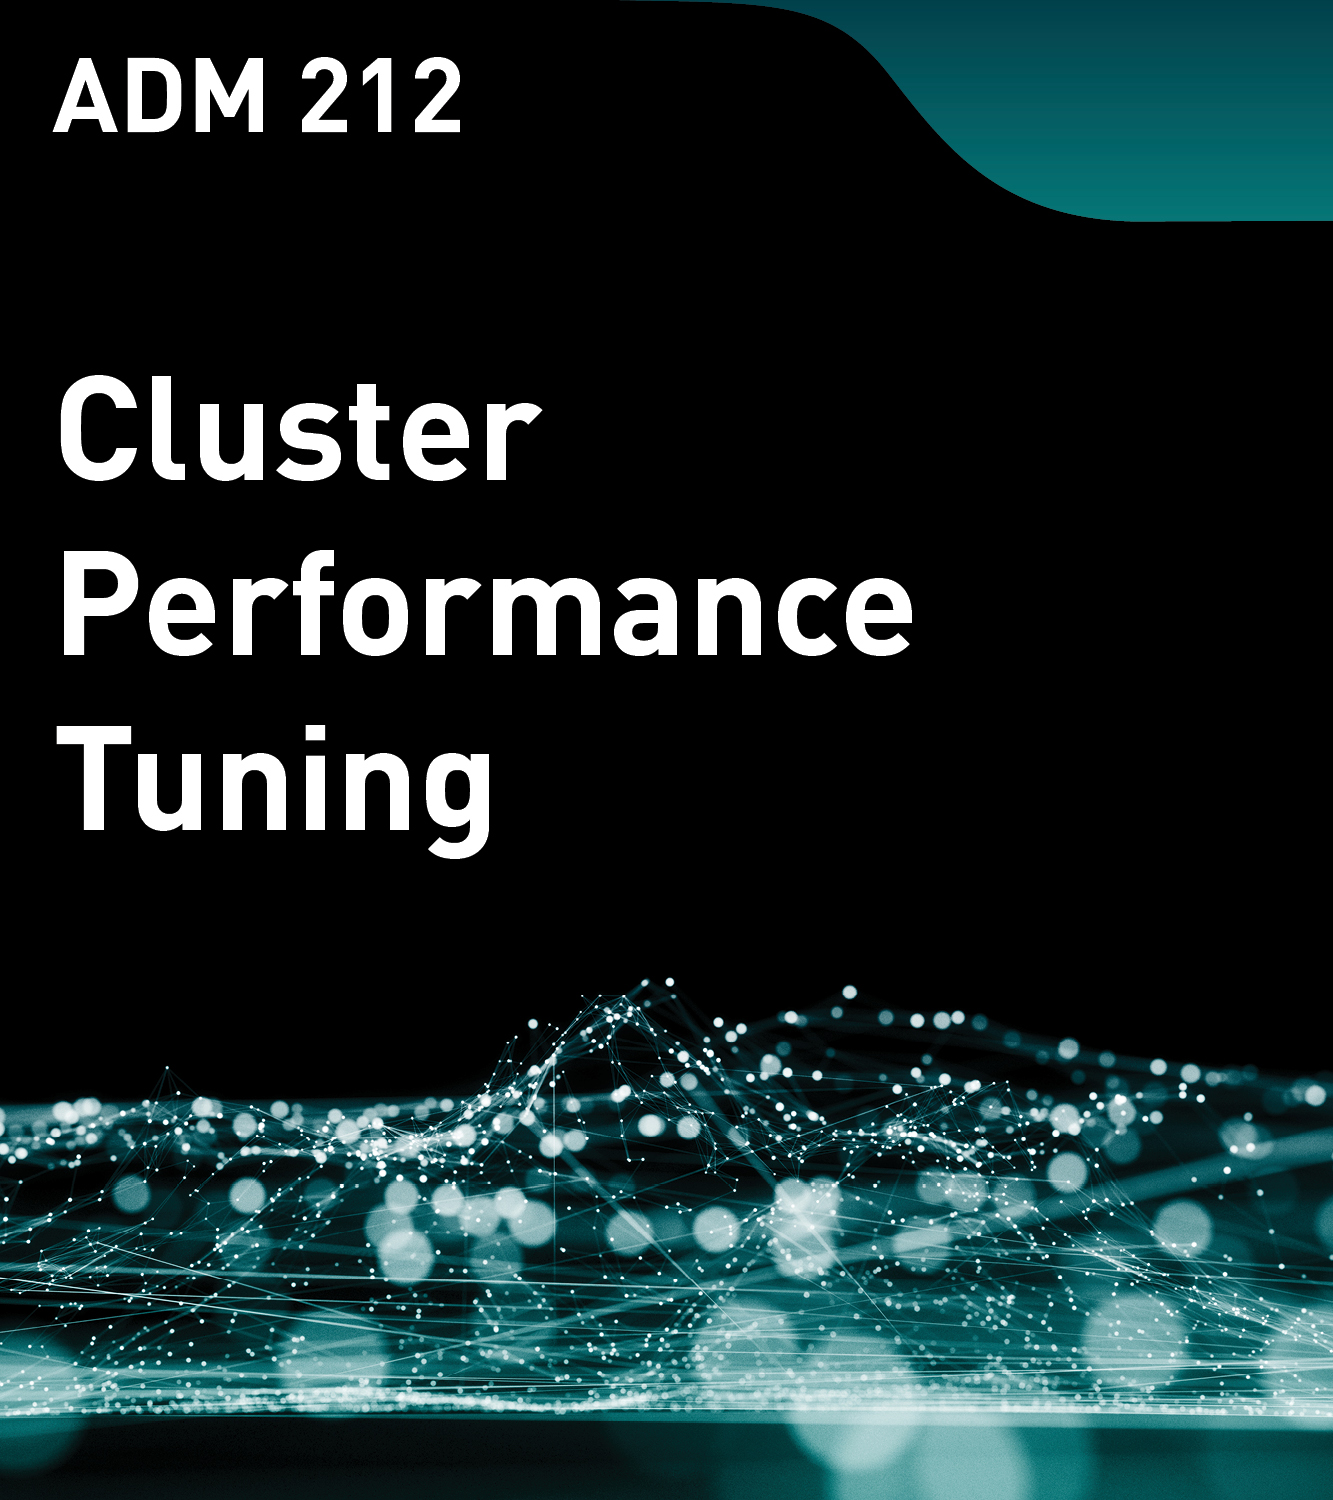 Cluster Performance Tuning